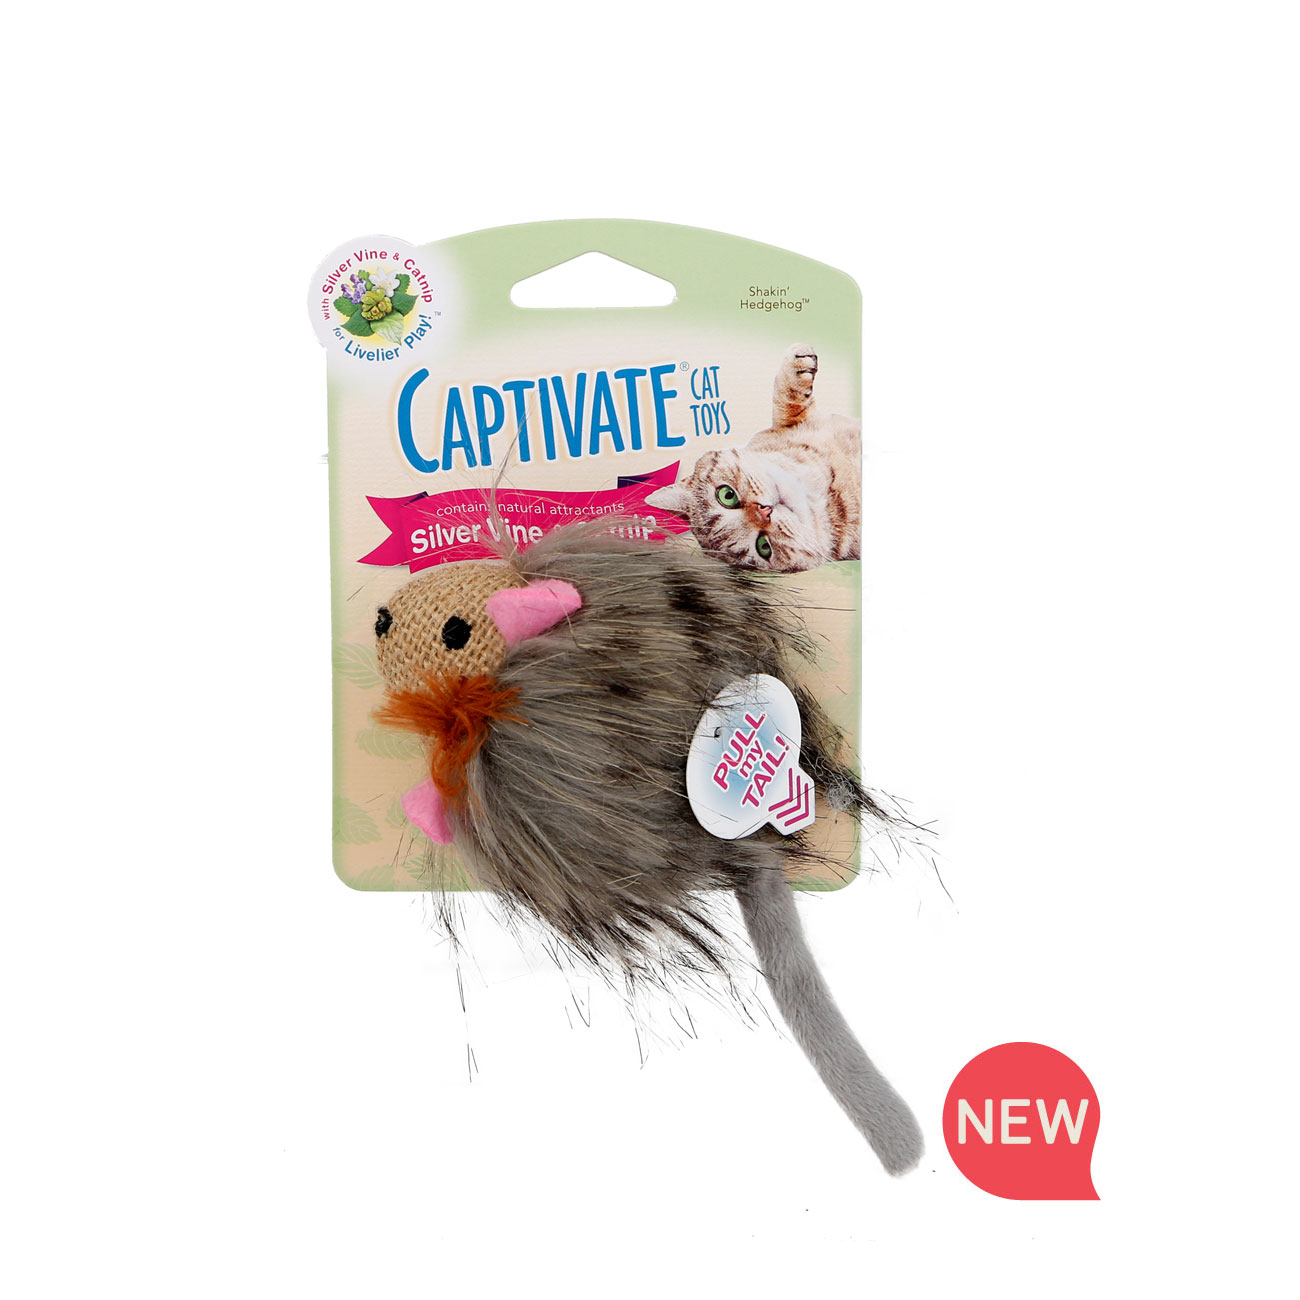 New! Hartz captivate shakin hedgehog cat toy with silver vine and catnip. Hartz SKU#3270011253